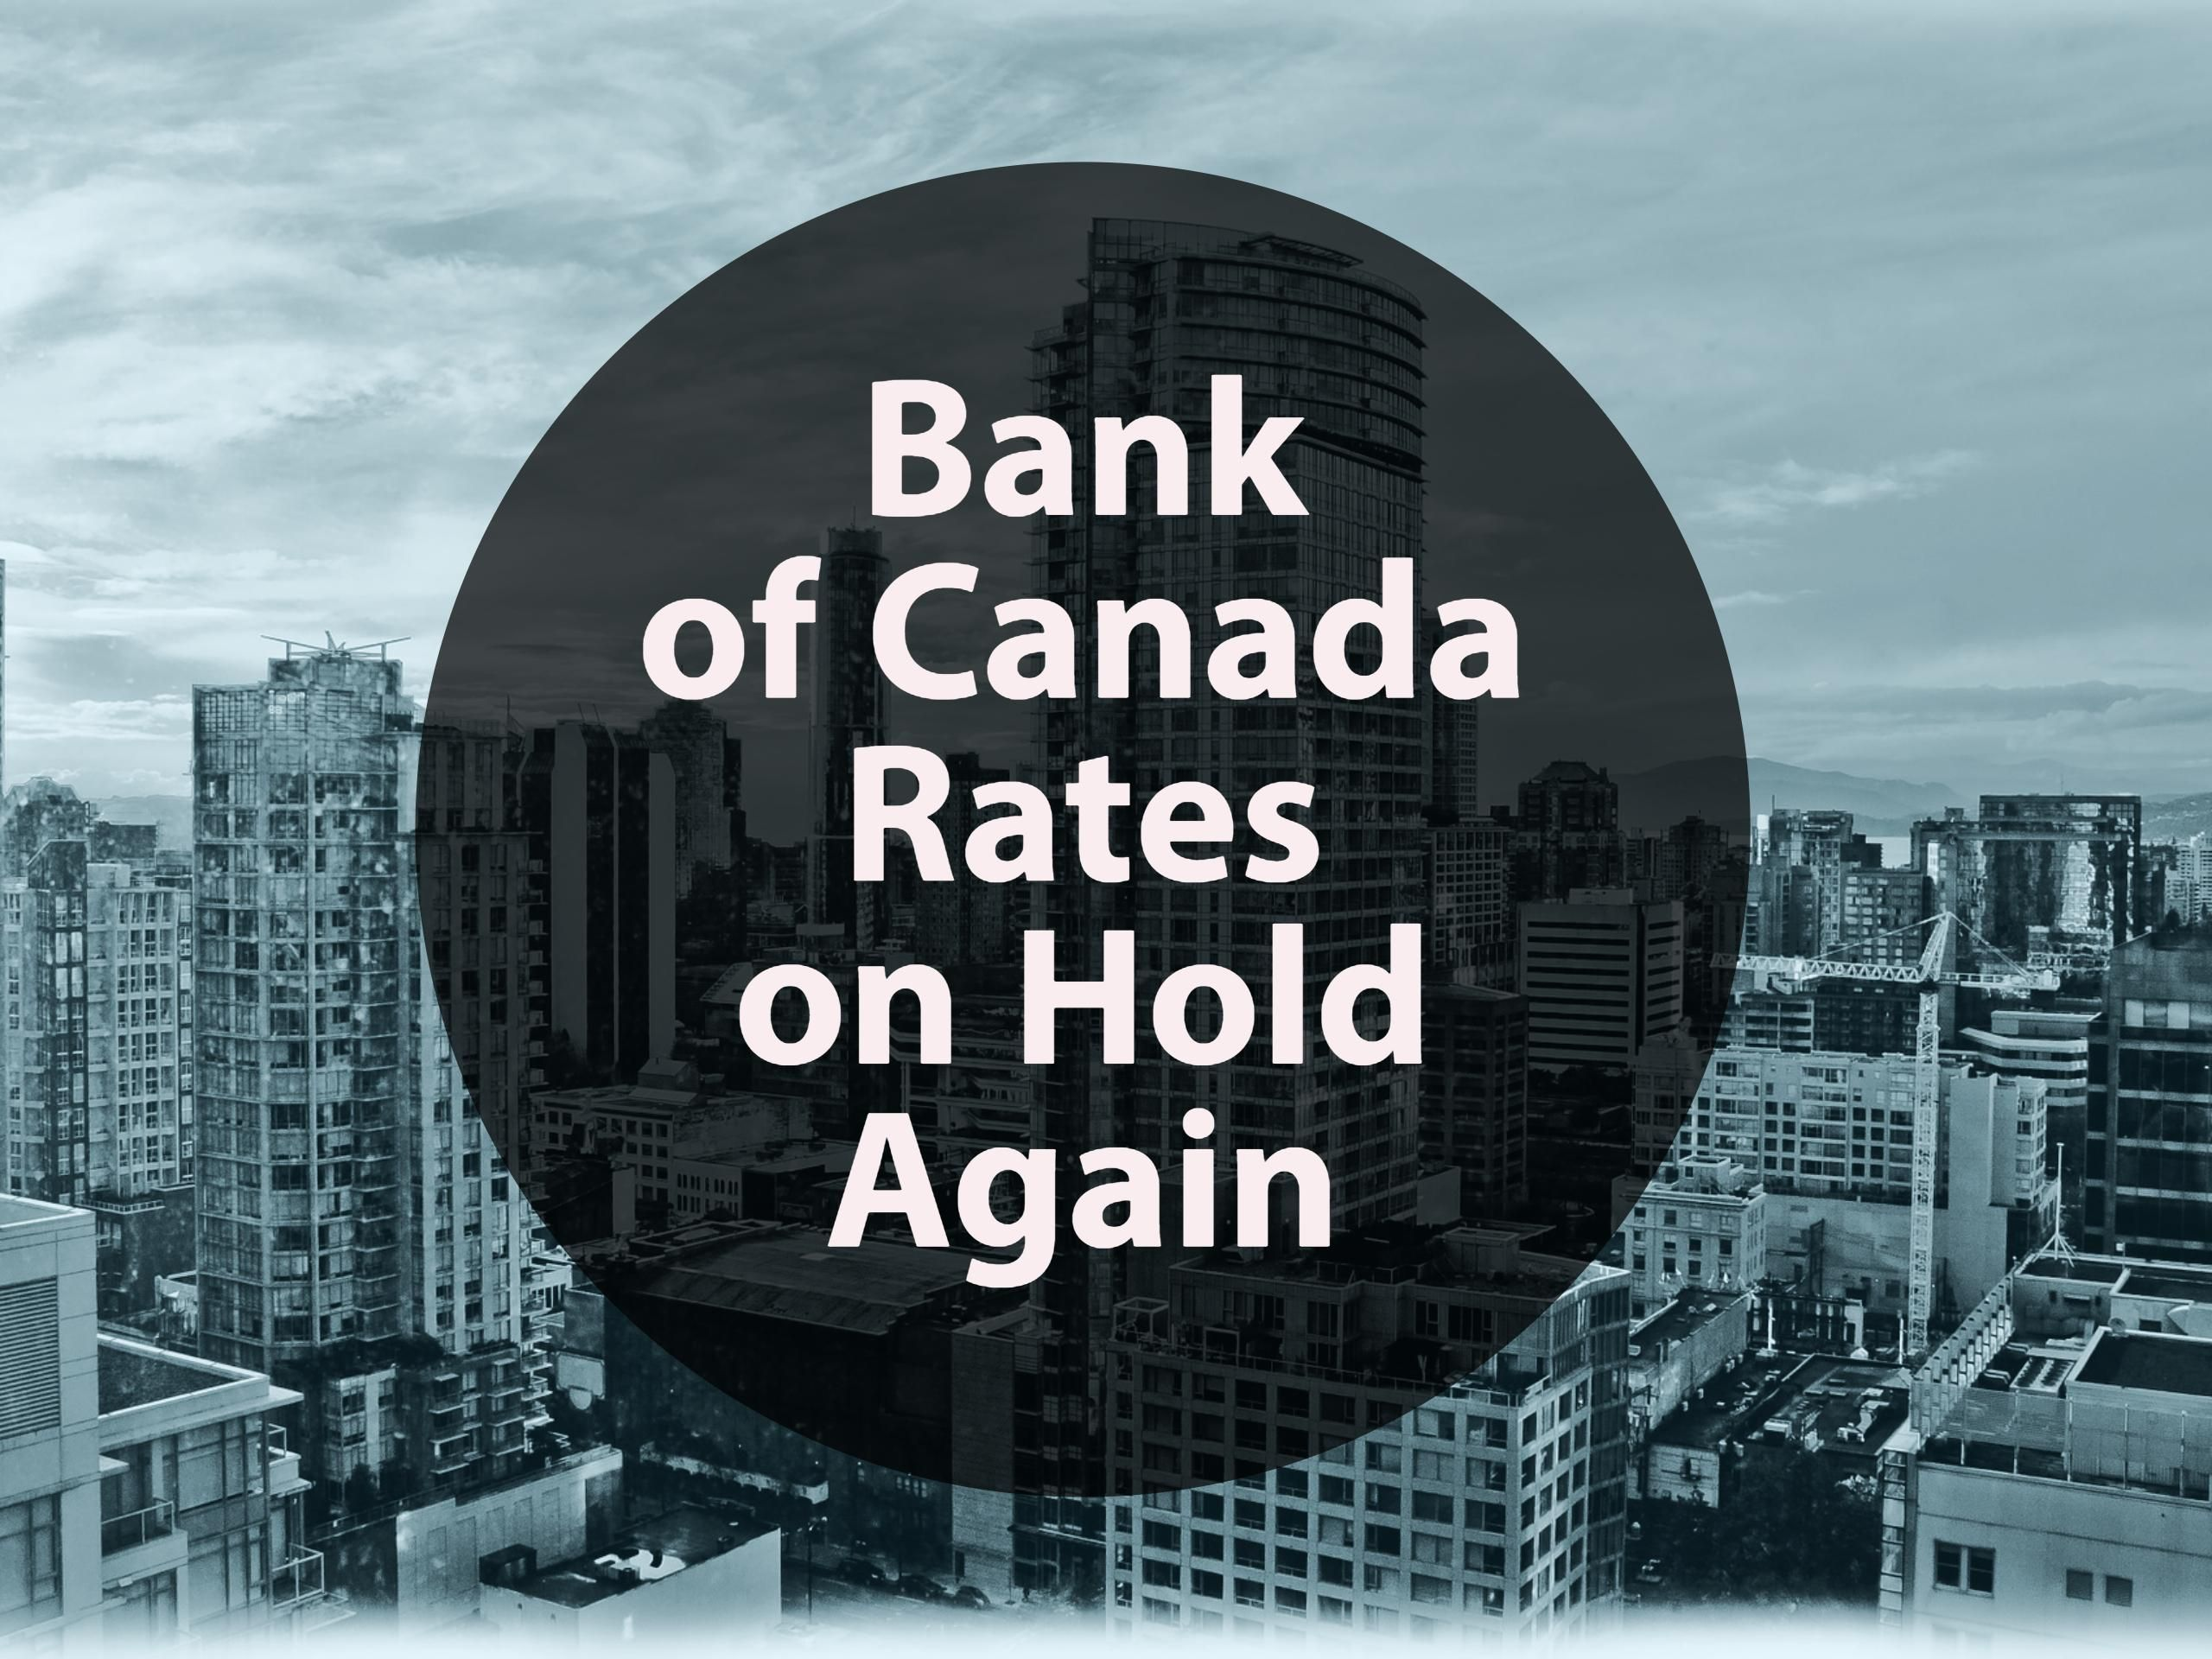 Bank Of Canada Rates On Hold Again Glm Mortgage Group Canada Hold On Mortgage